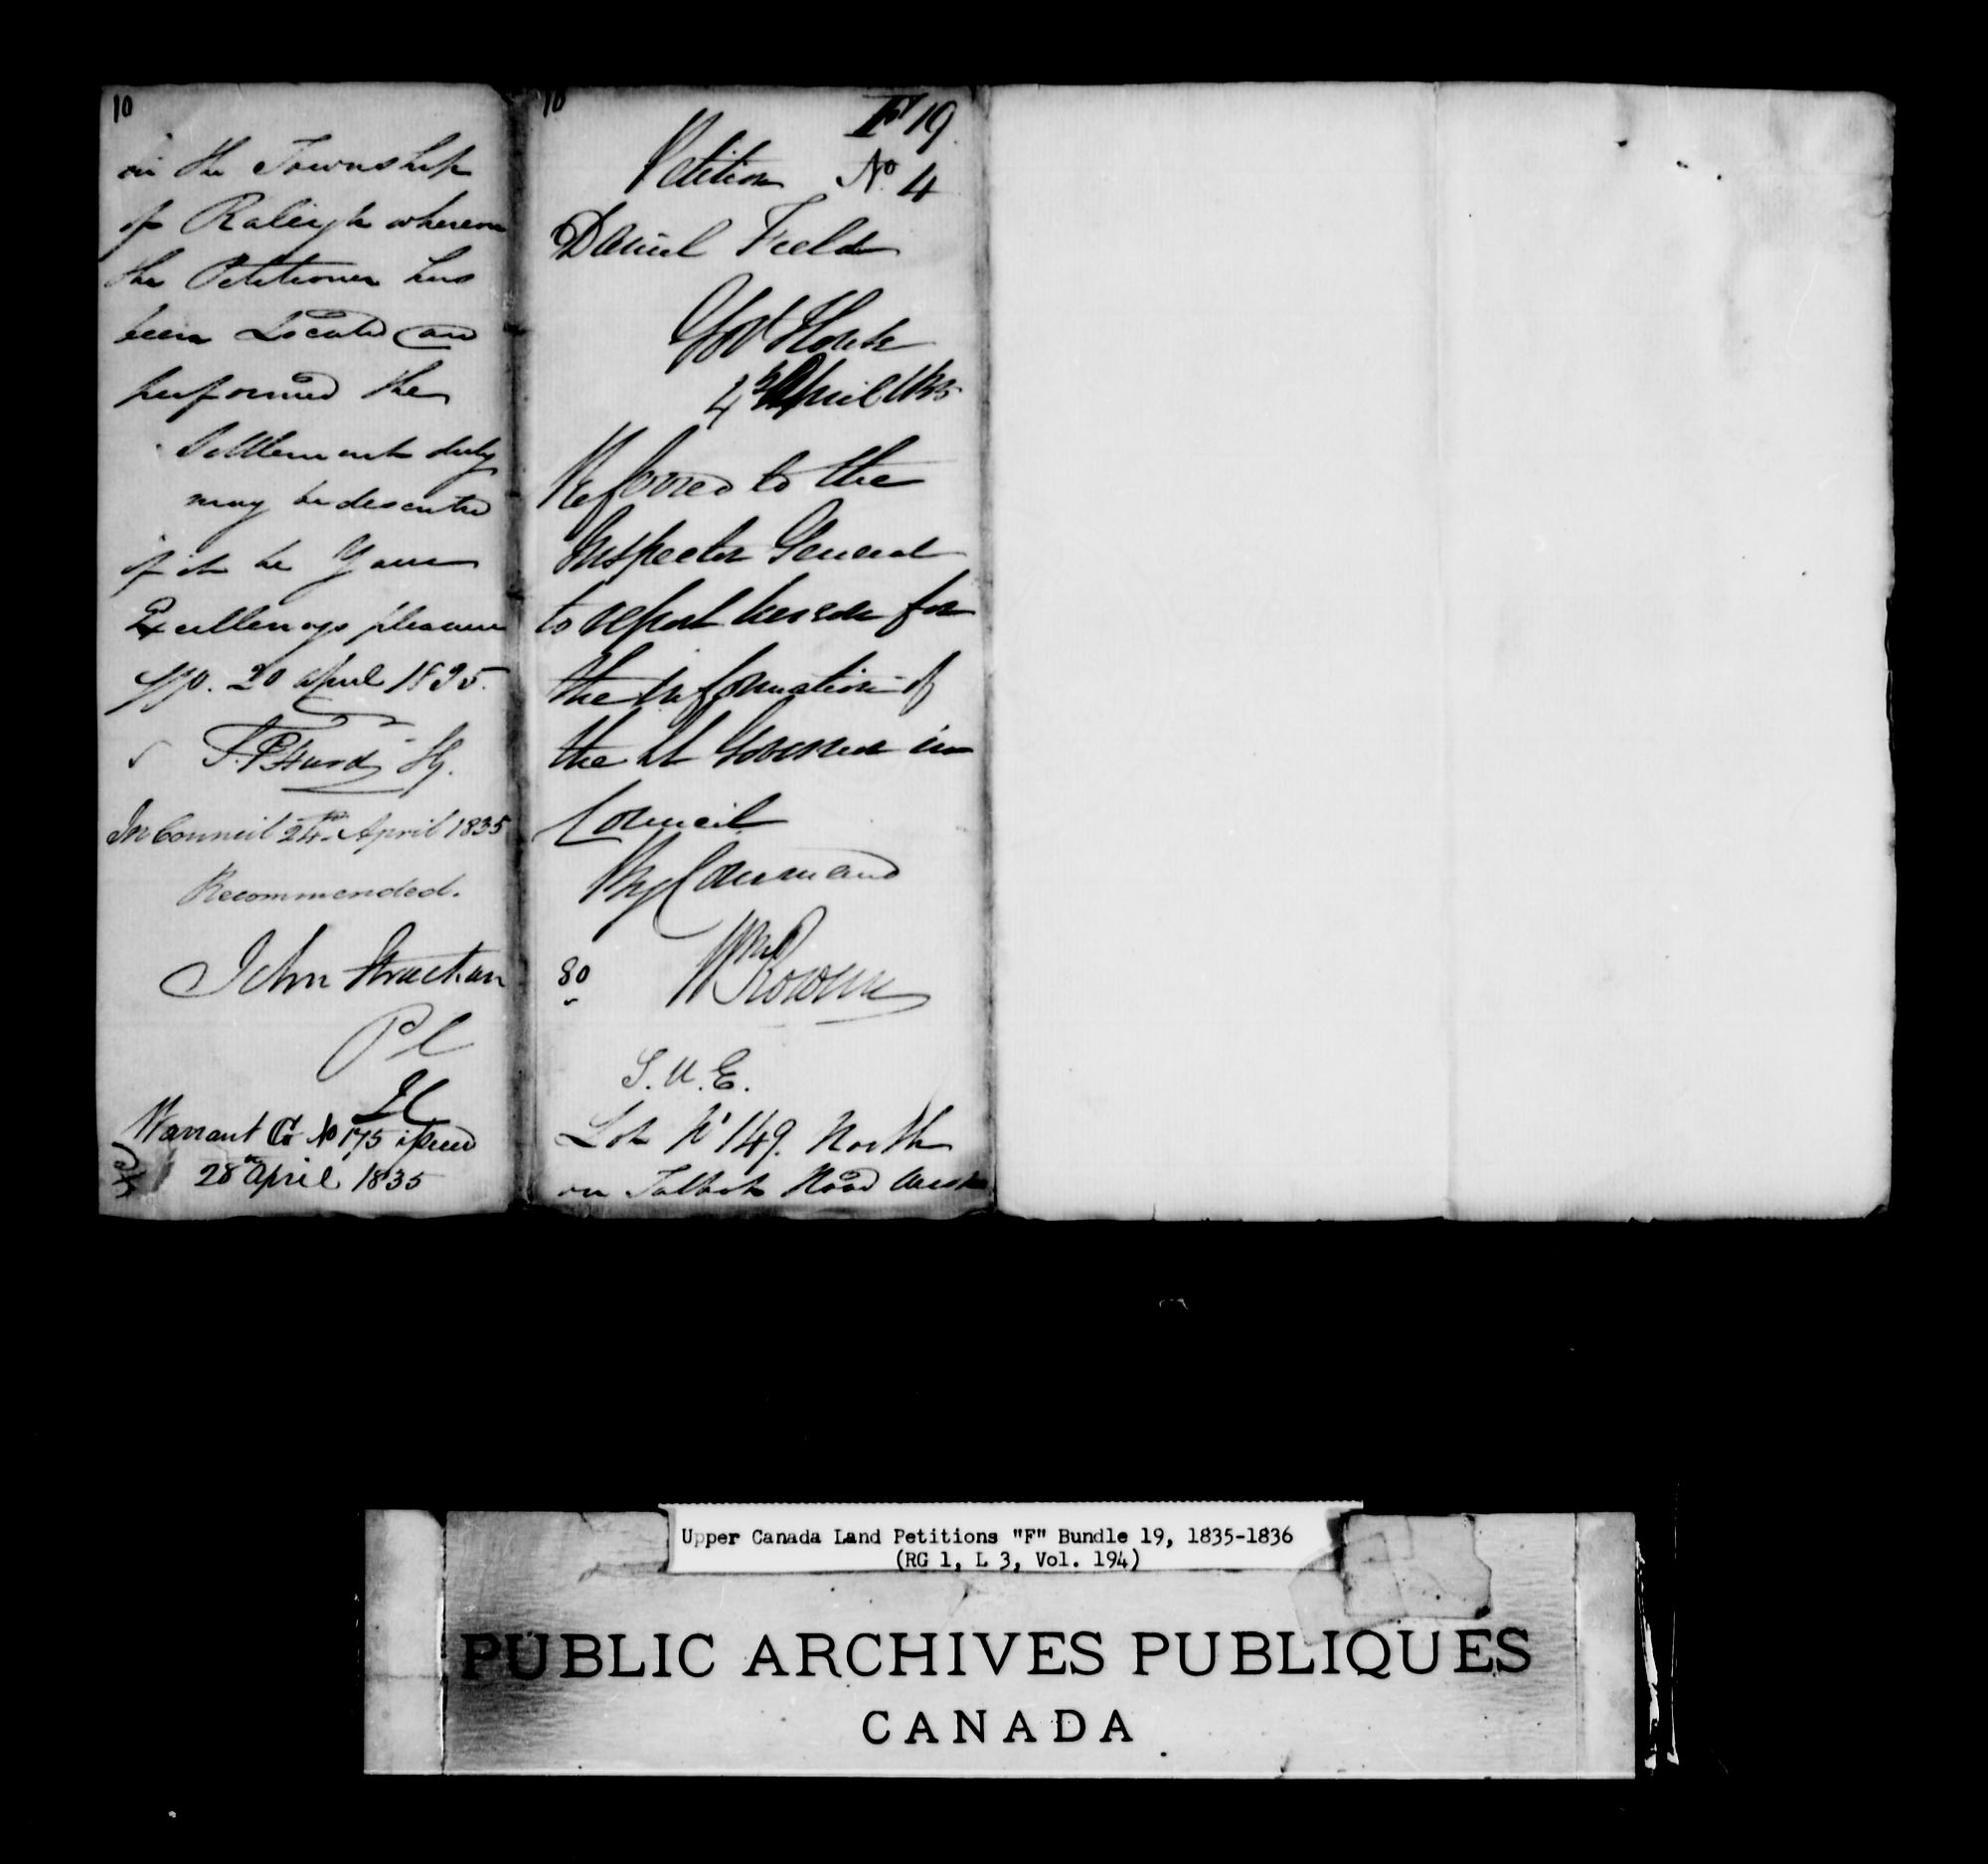 Title: Upper Canada Land Petitions (1763-1865) - Mikan Number: 205131 - Microform: c-1899